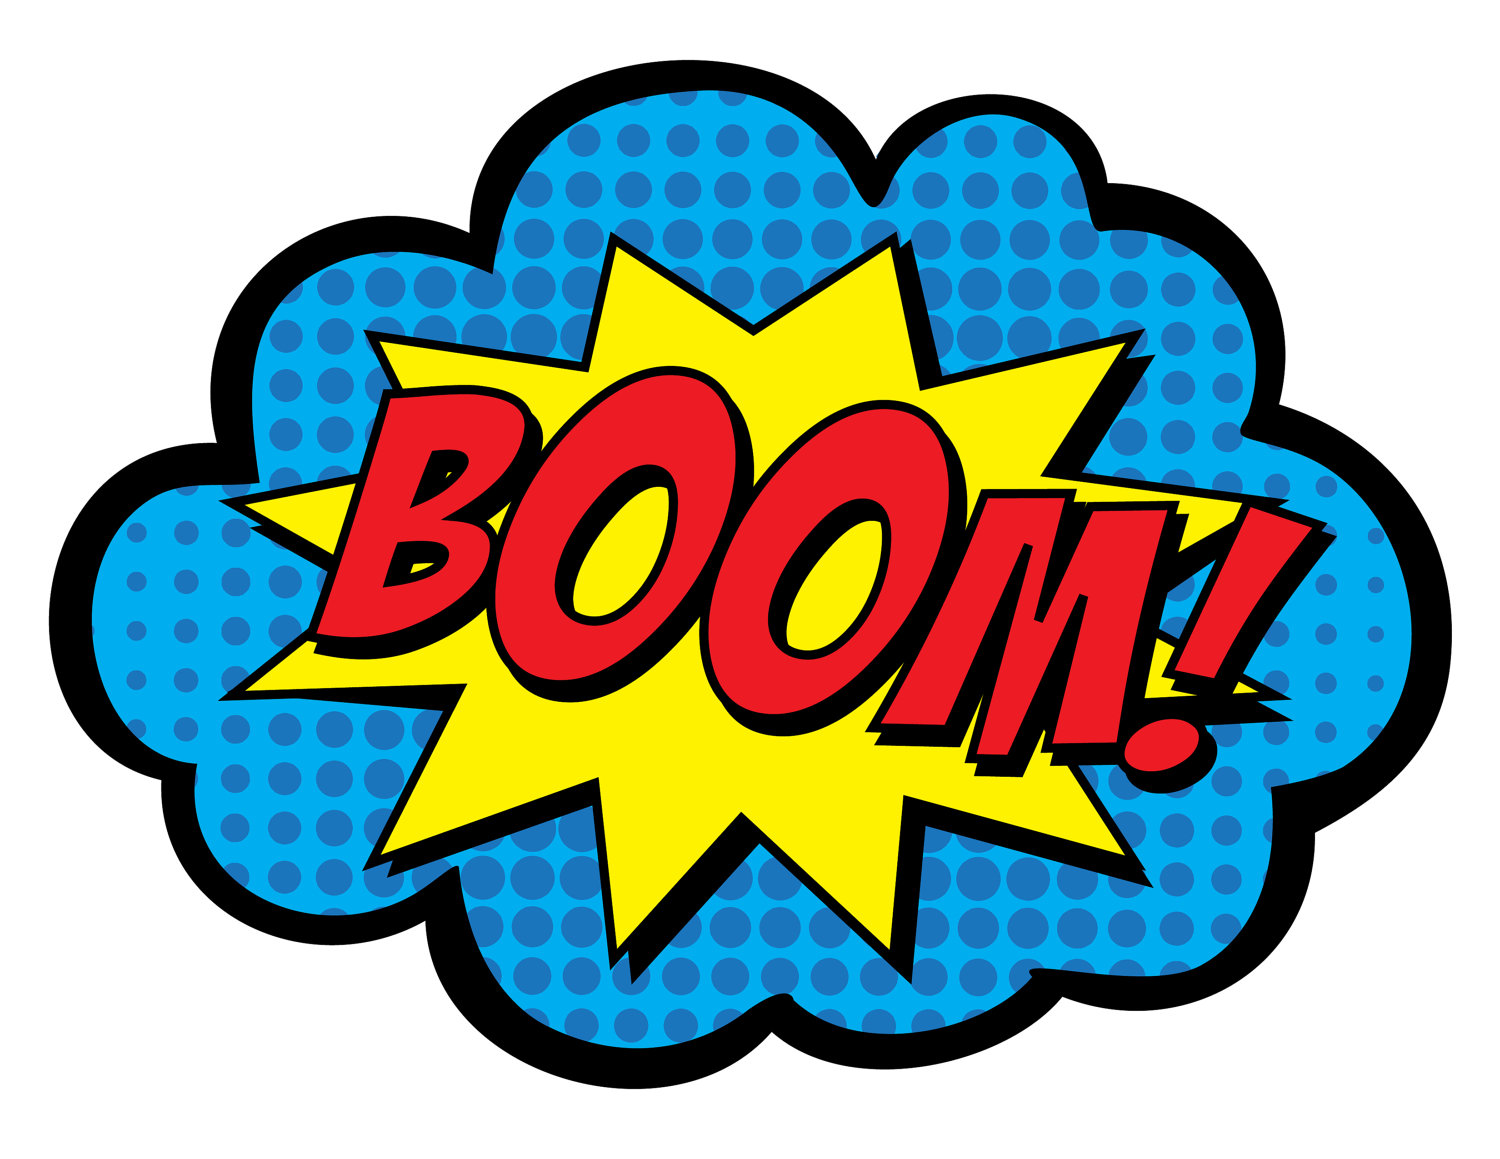 Boom clipart pow, Boom pow Transparent FREE for download on.